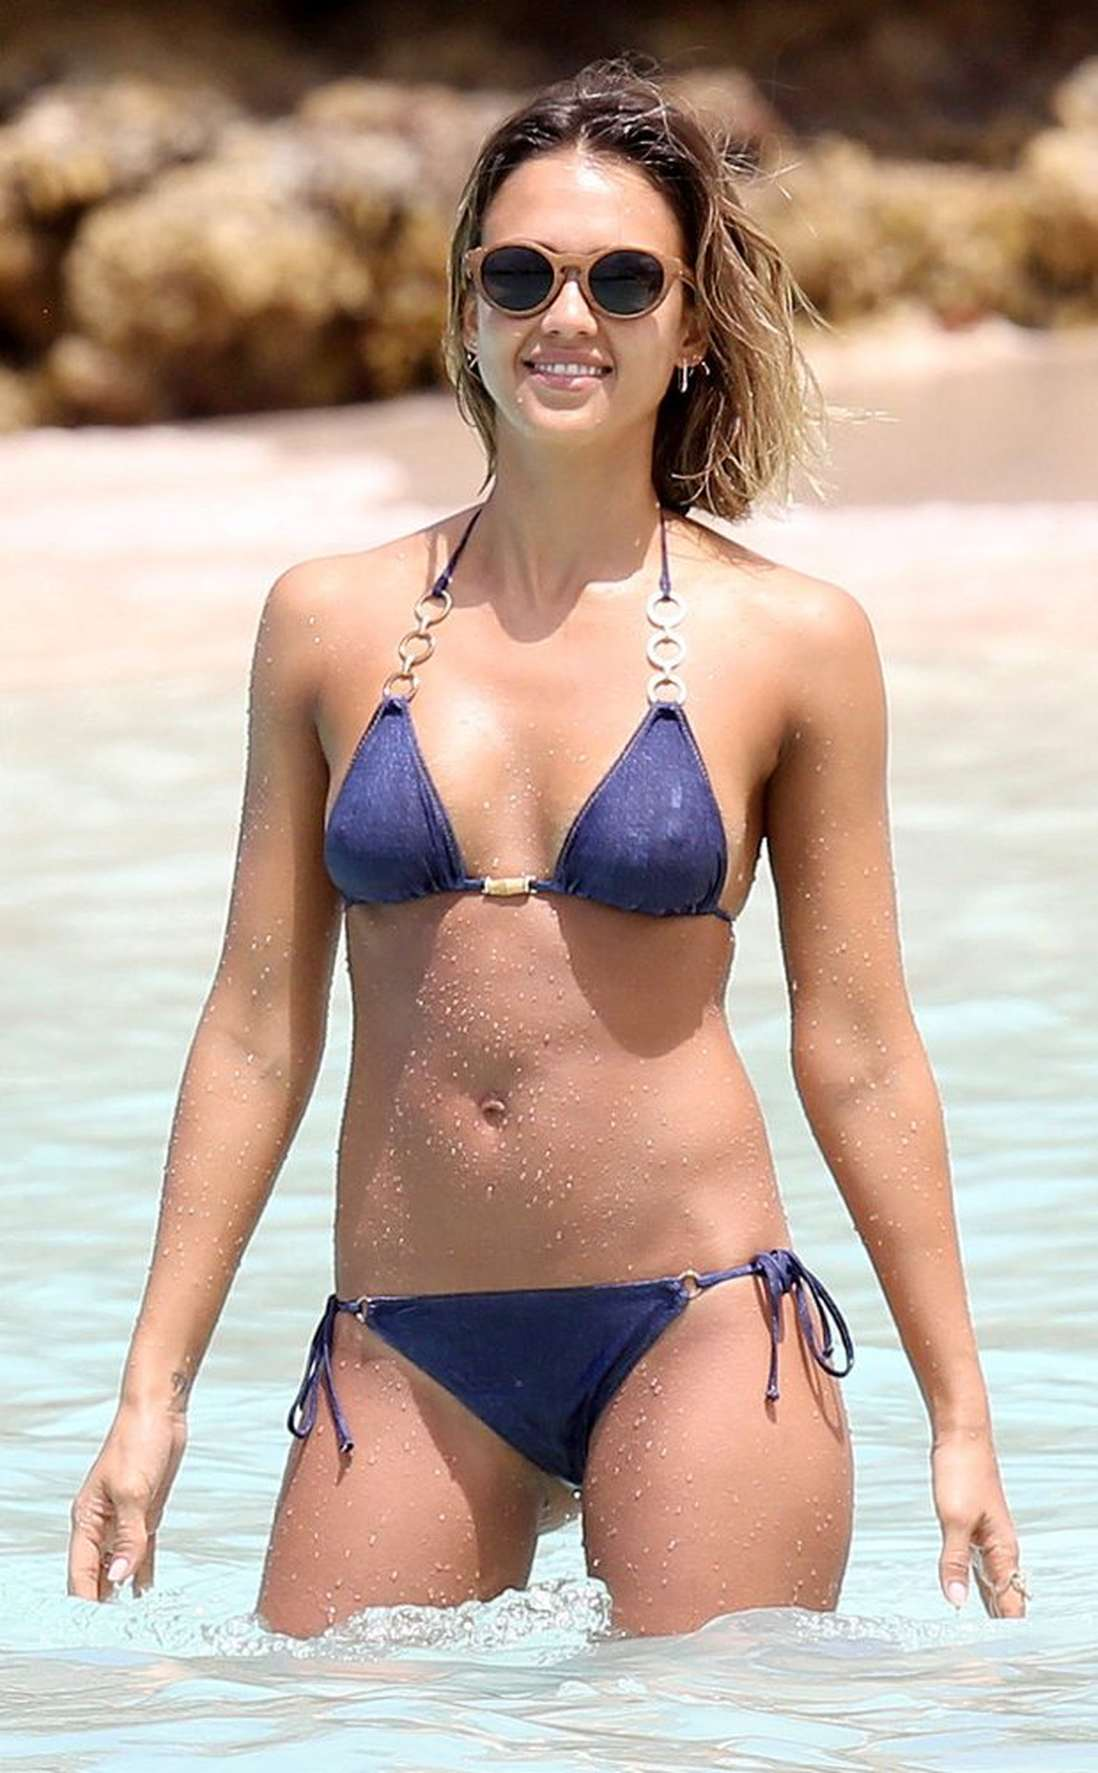 mature-celebrities-celebrity-bikini-hair-mom